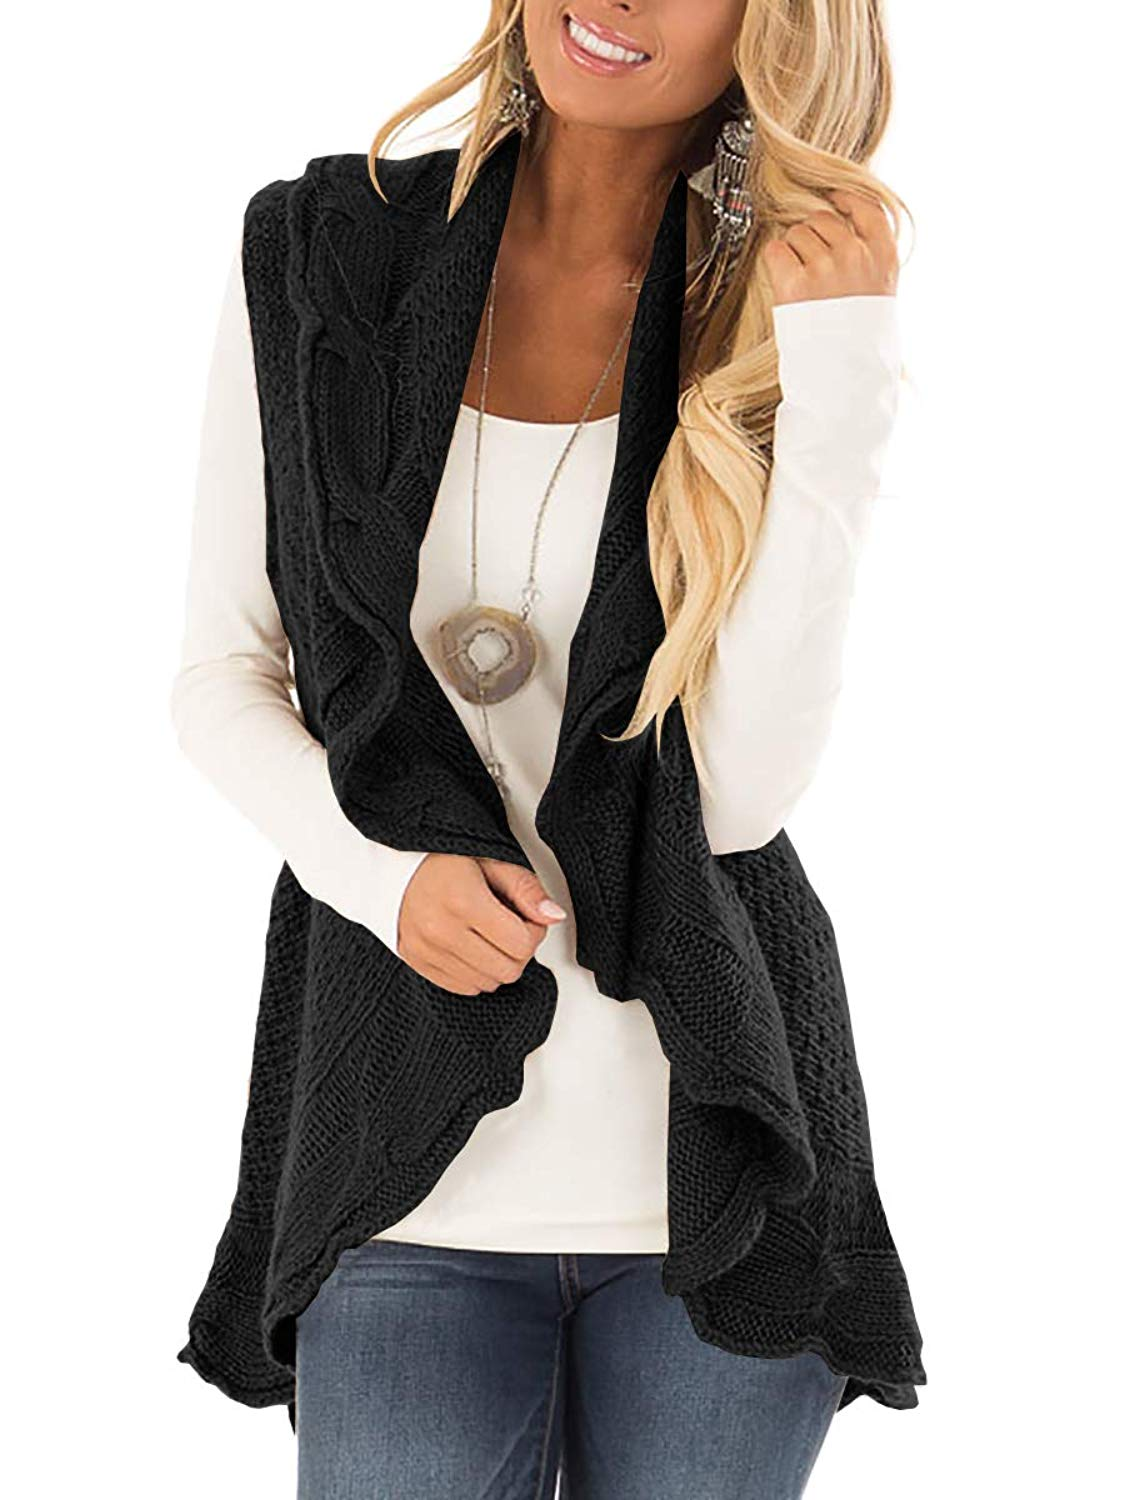 795c95daf9a Get Quotations · GAMISOTE Women s Cardigan Vest Sleeveless Open Front  Knitted Drape Sweater Coat